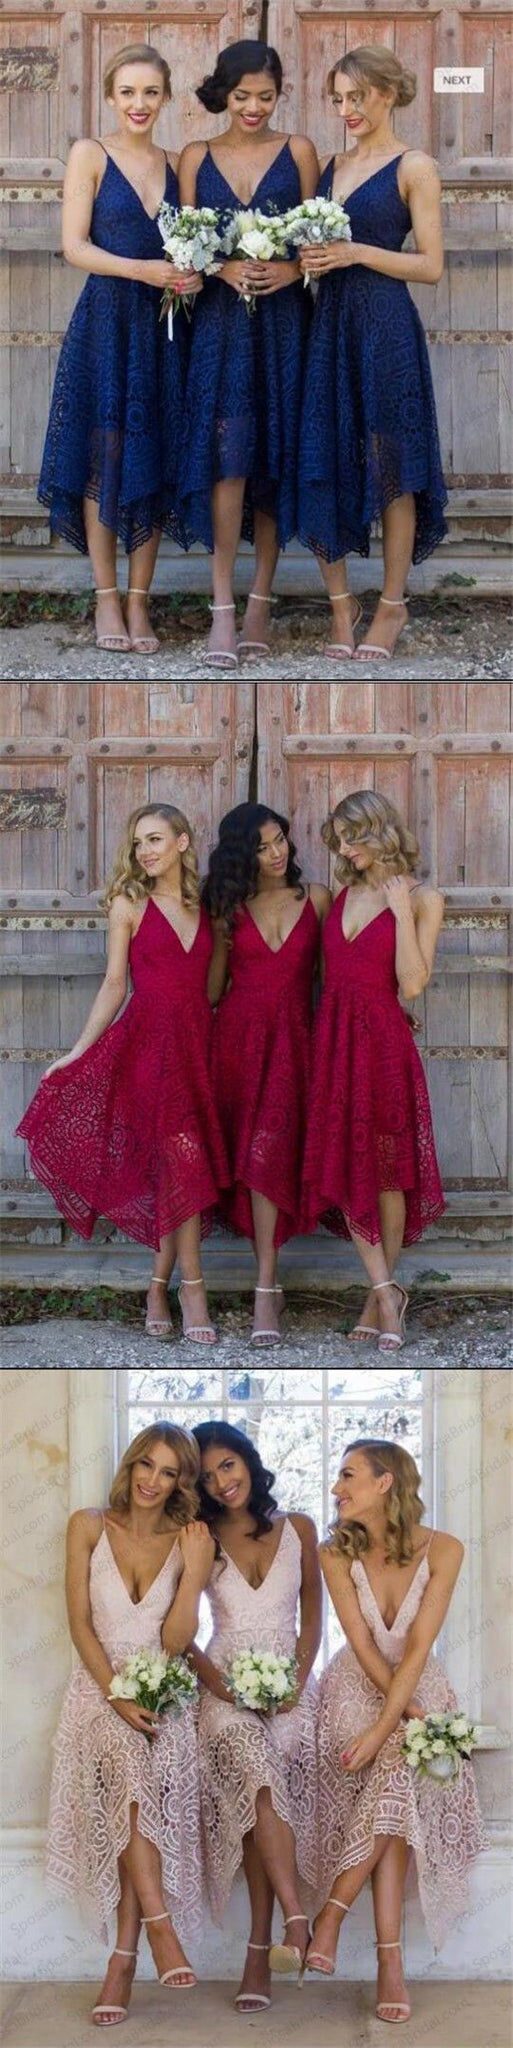 2018 lace bridesmaid dress royal blue/red/pink prom dress knee length custom made,HS094